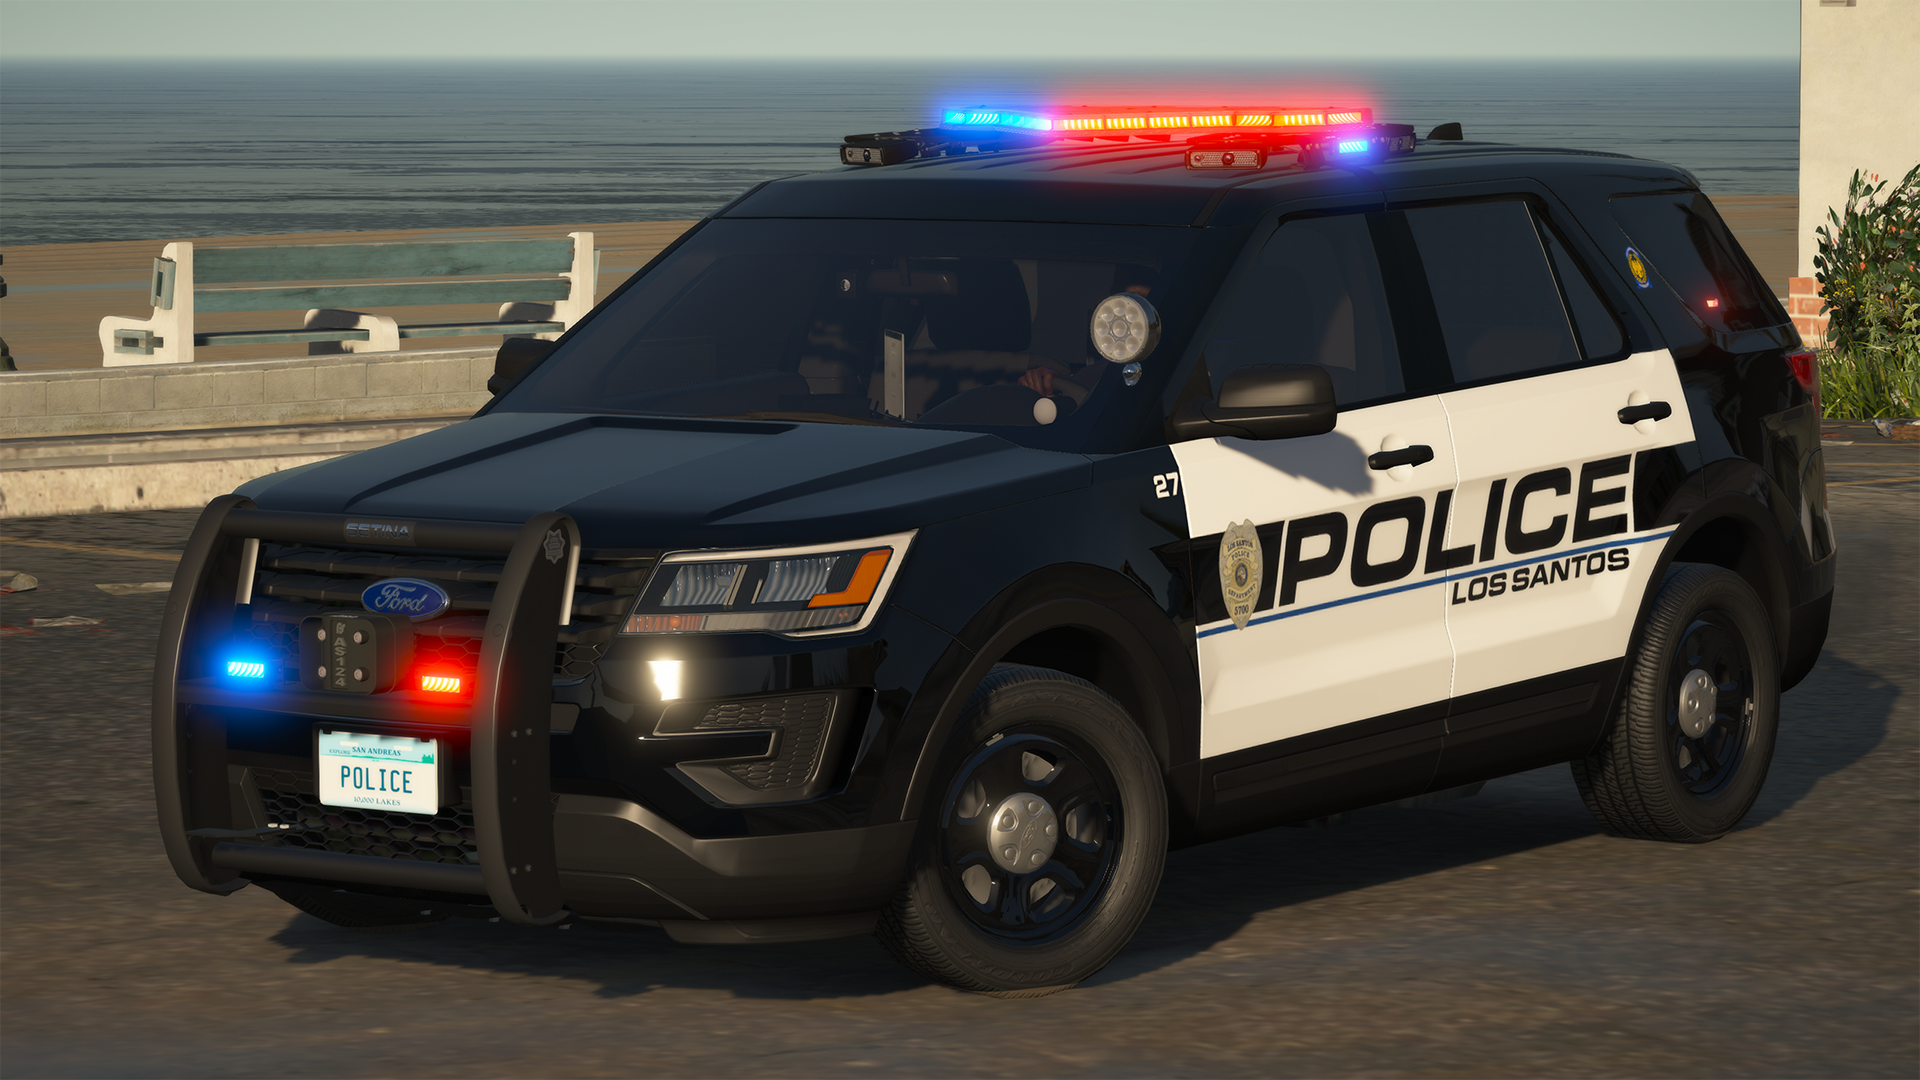 Grand_Theft_Auto_V_7_25_2020_11_52_07_PM.png.05eb2a0dd4f9f846cbcf785bdc66abd3.png